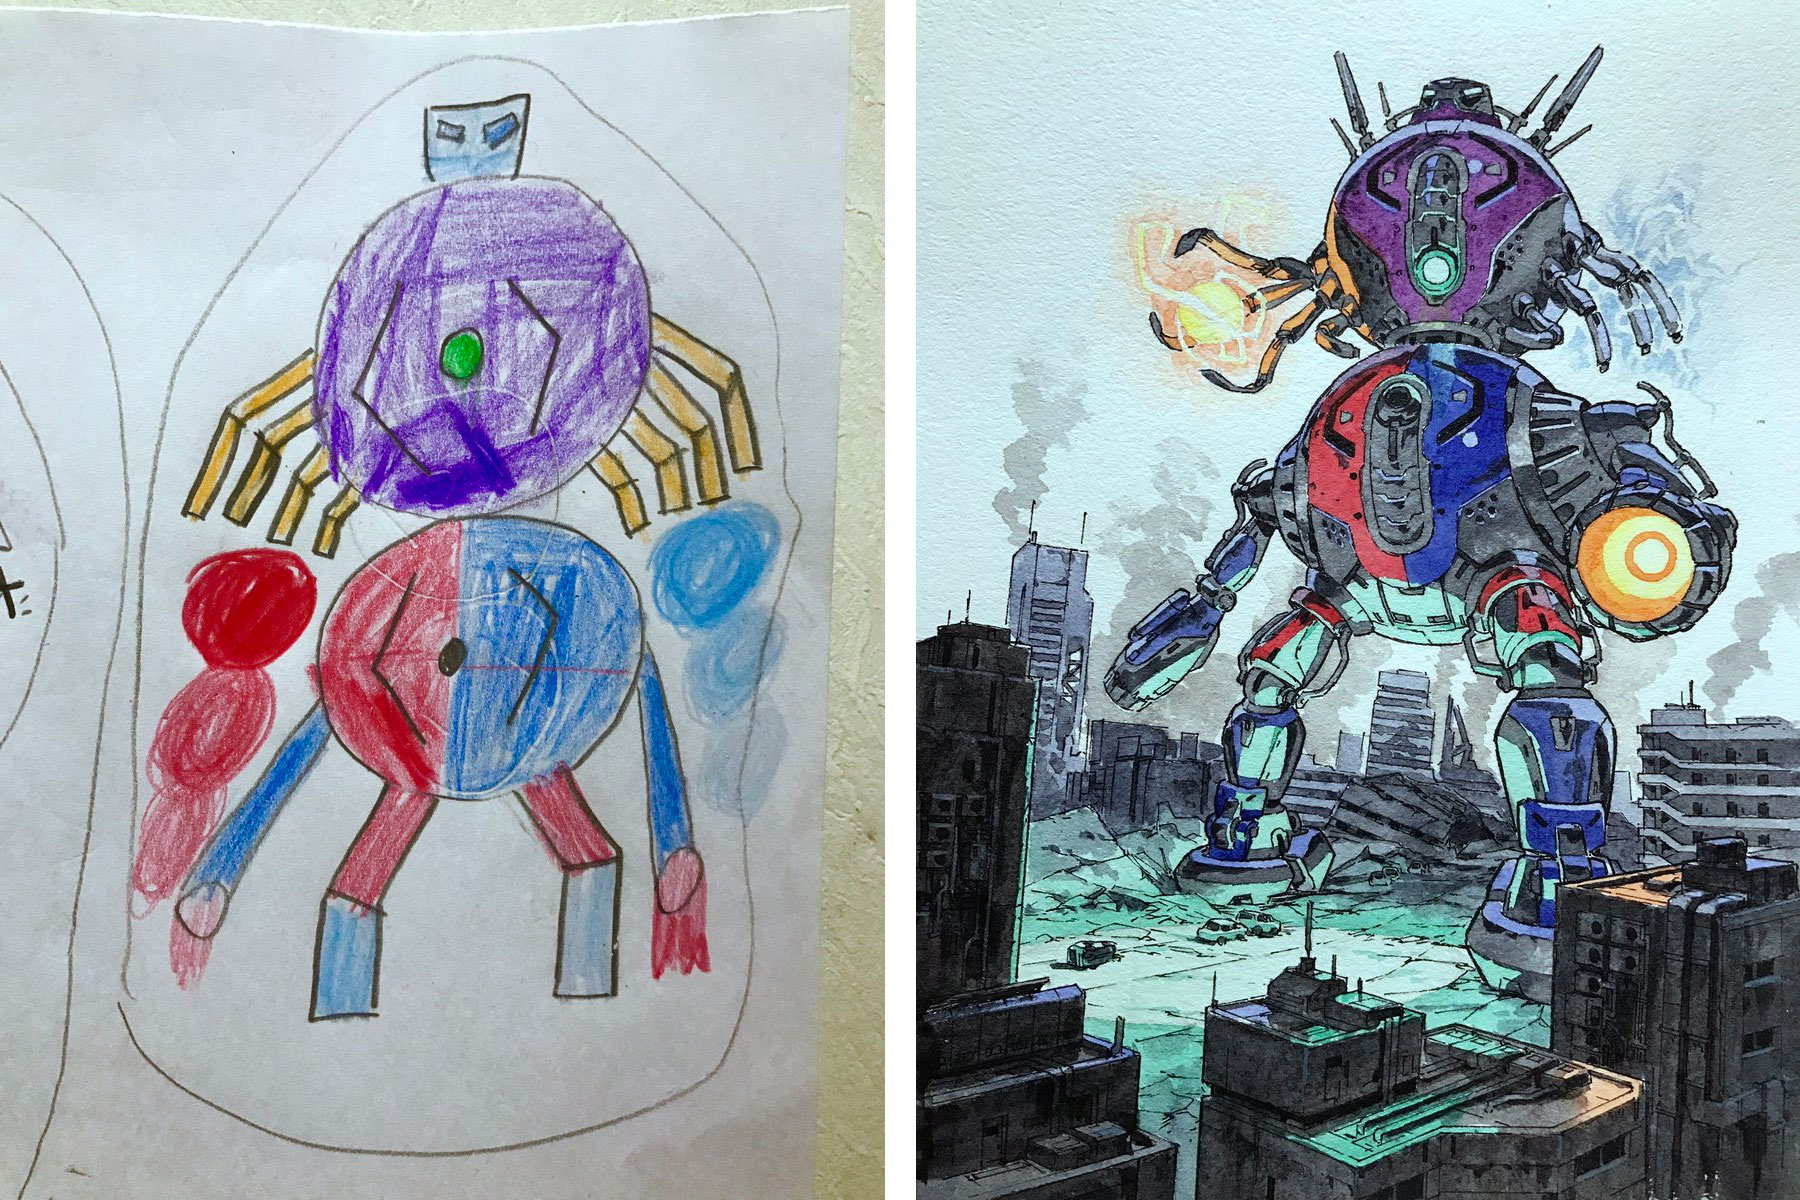 Father Transforms his Son's Drawings into Amazing Works of Art